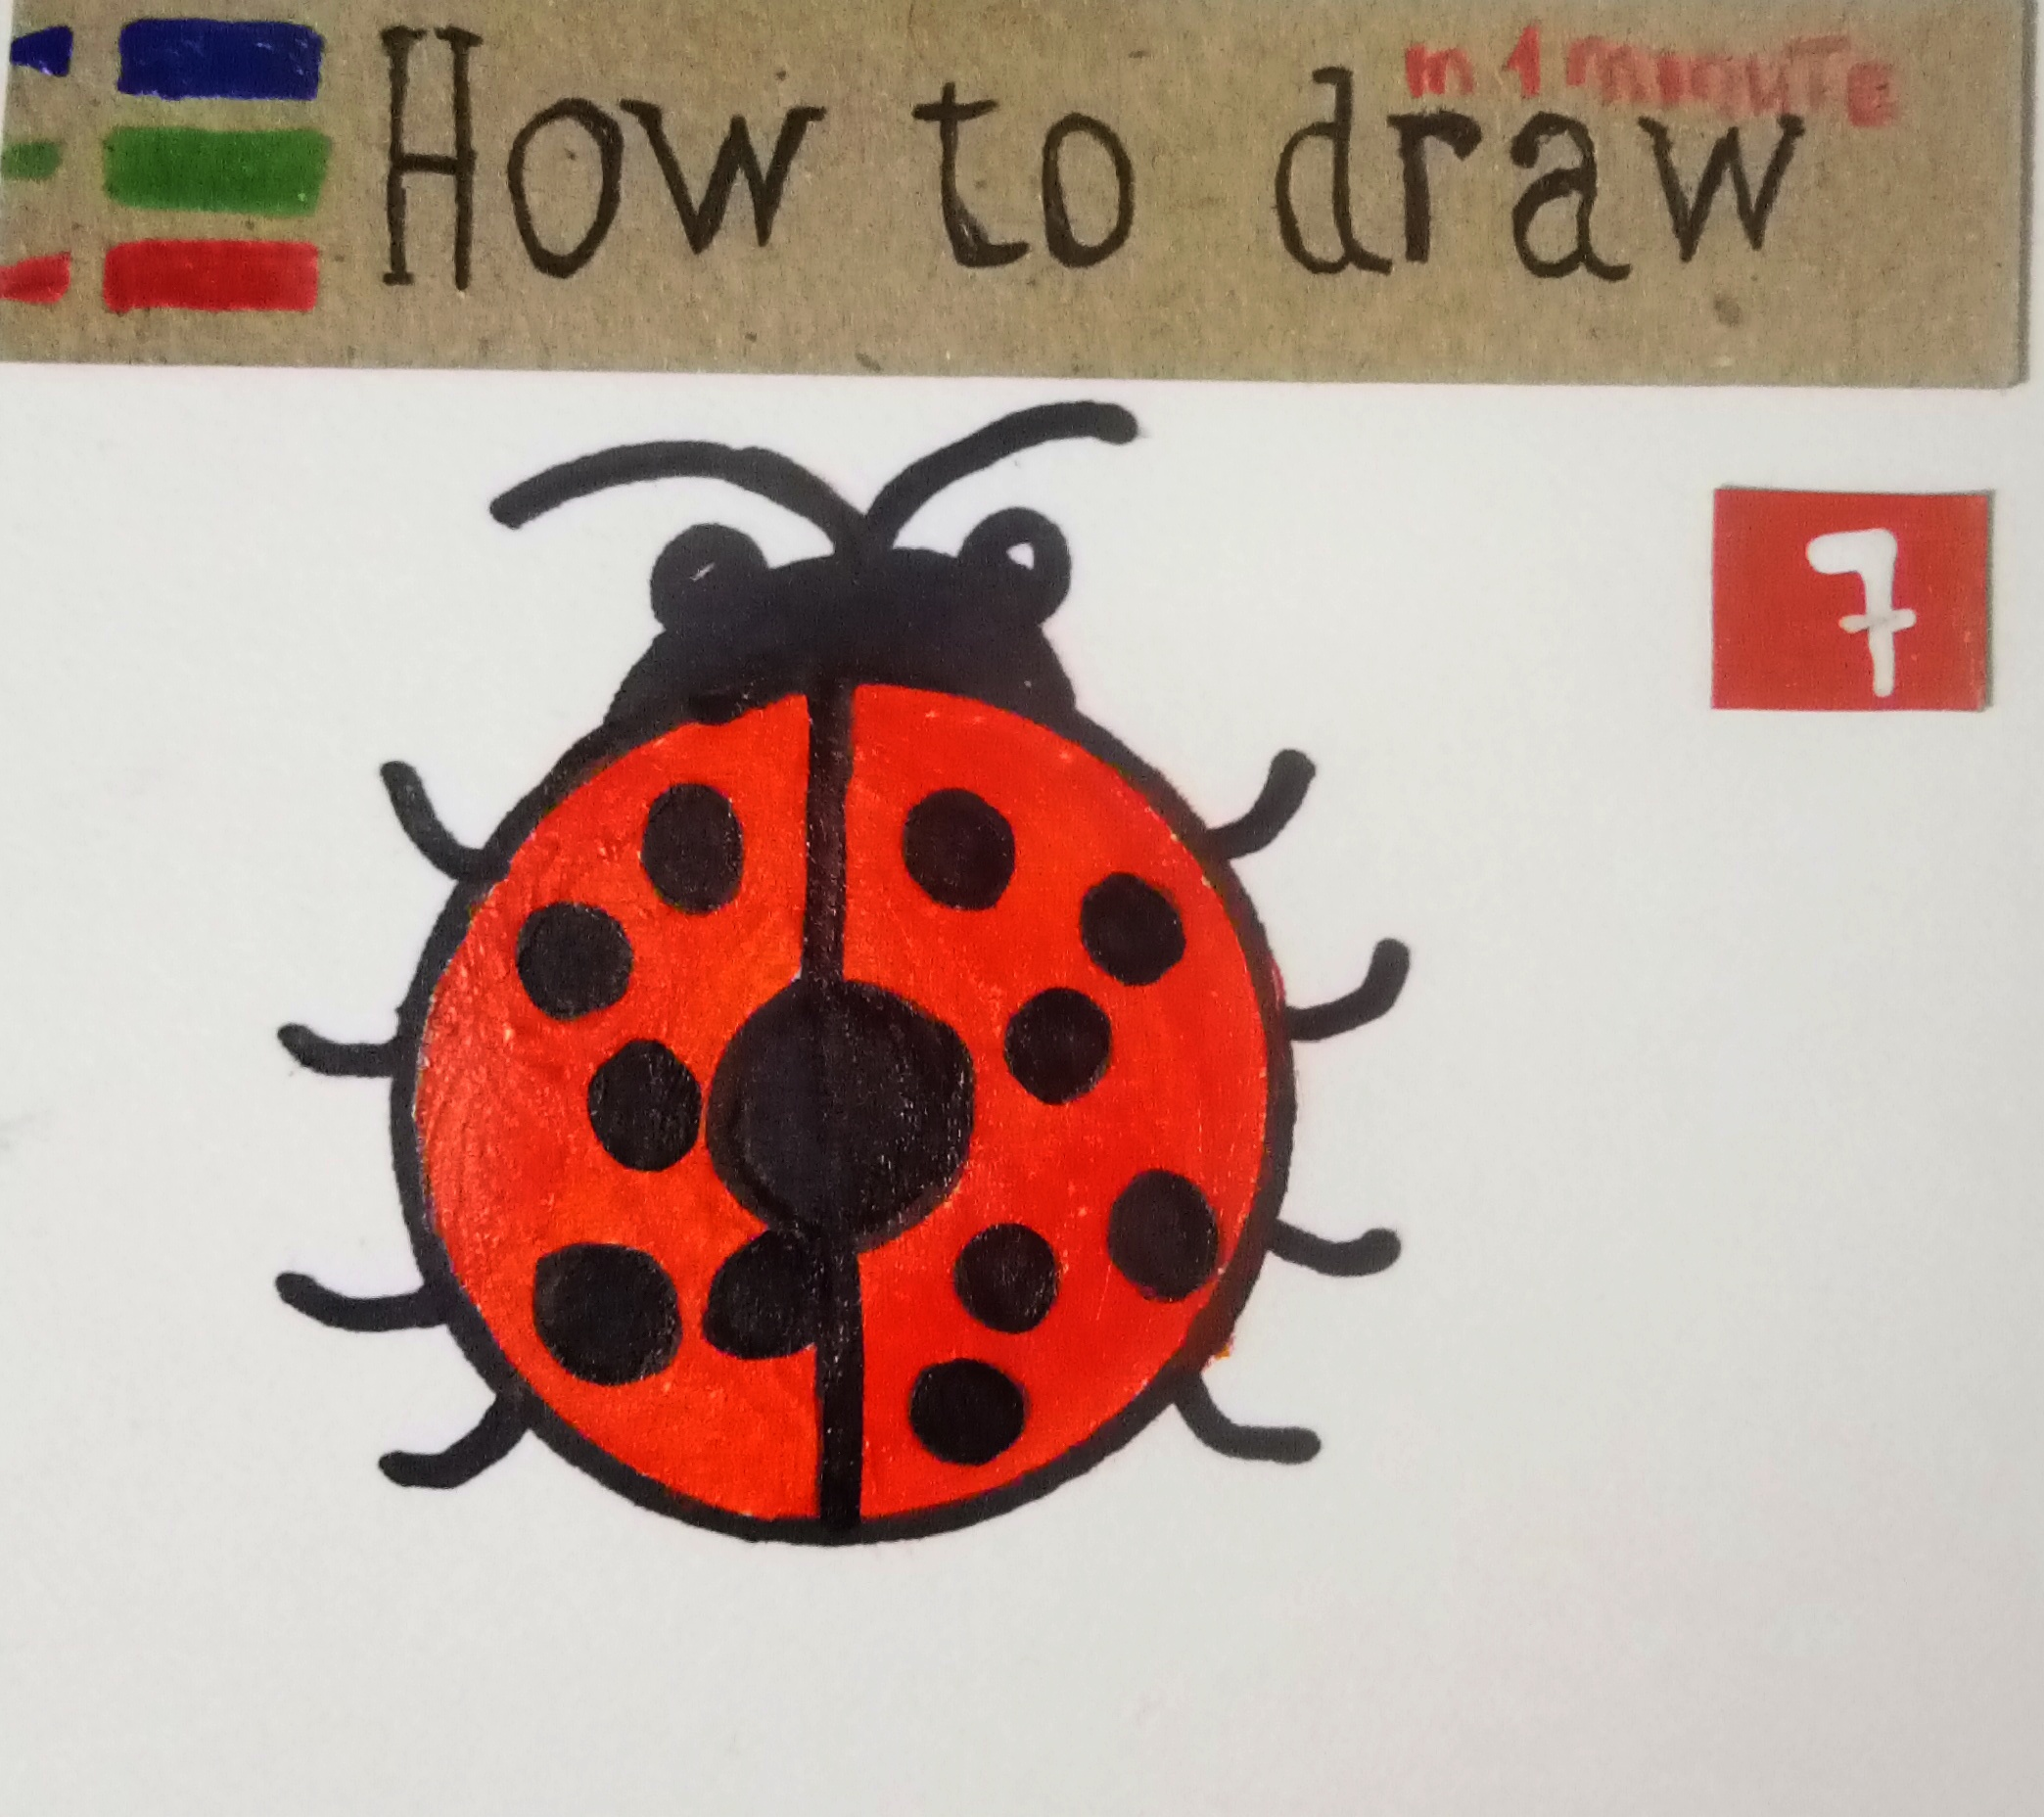 How to draw a ladybug - a simple tutorial